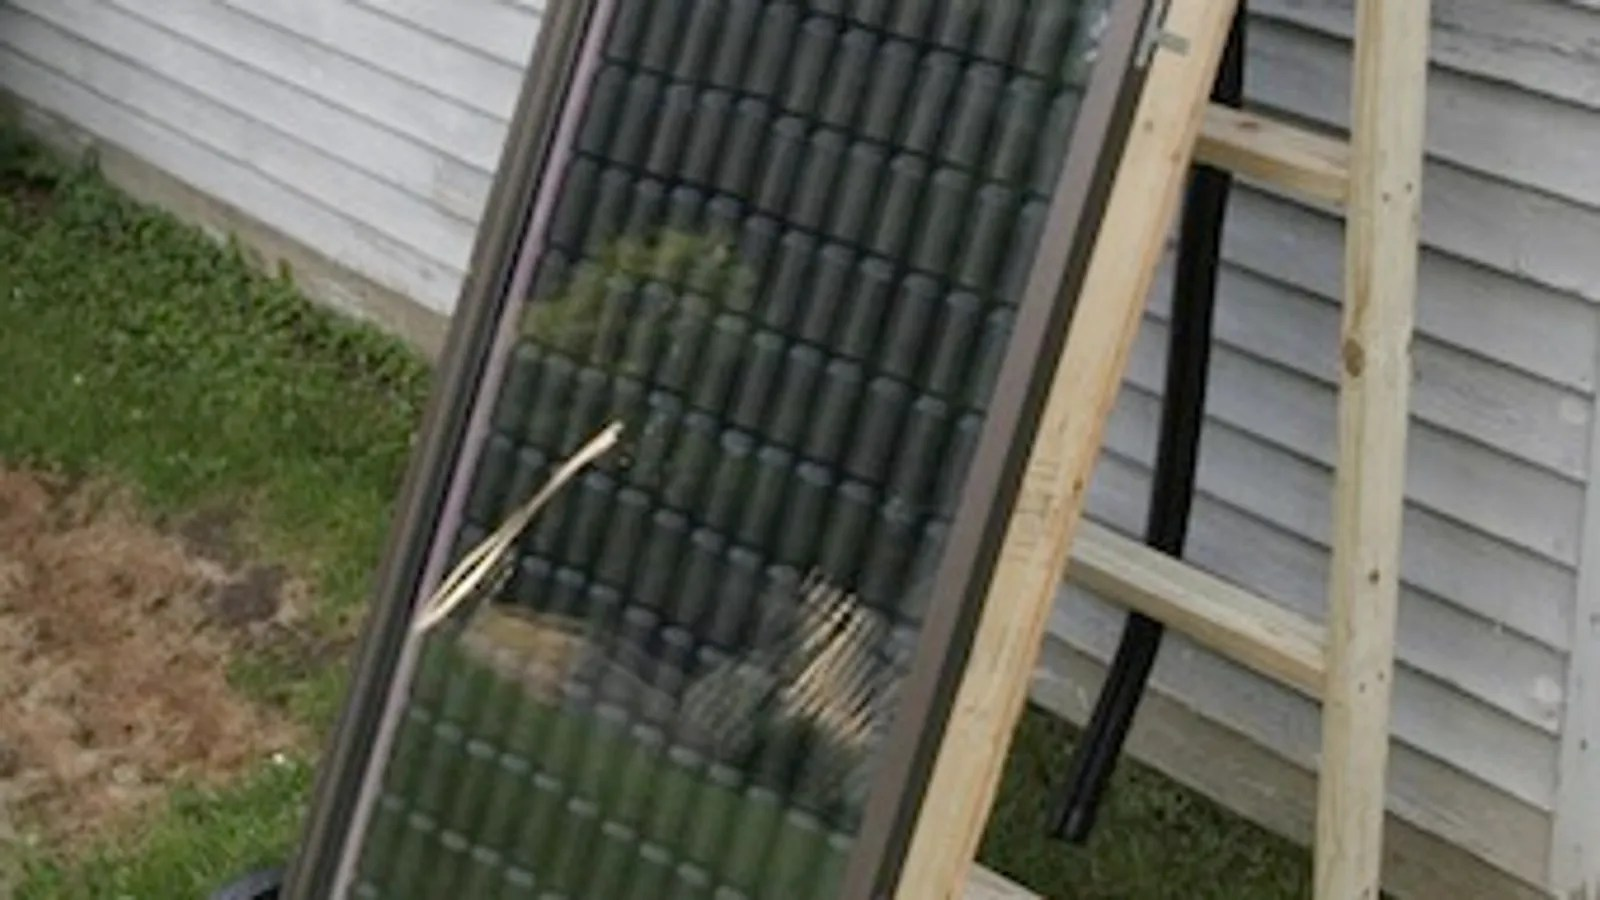 Solaranlage Garage Build Your Own Soda Can Solar Heater